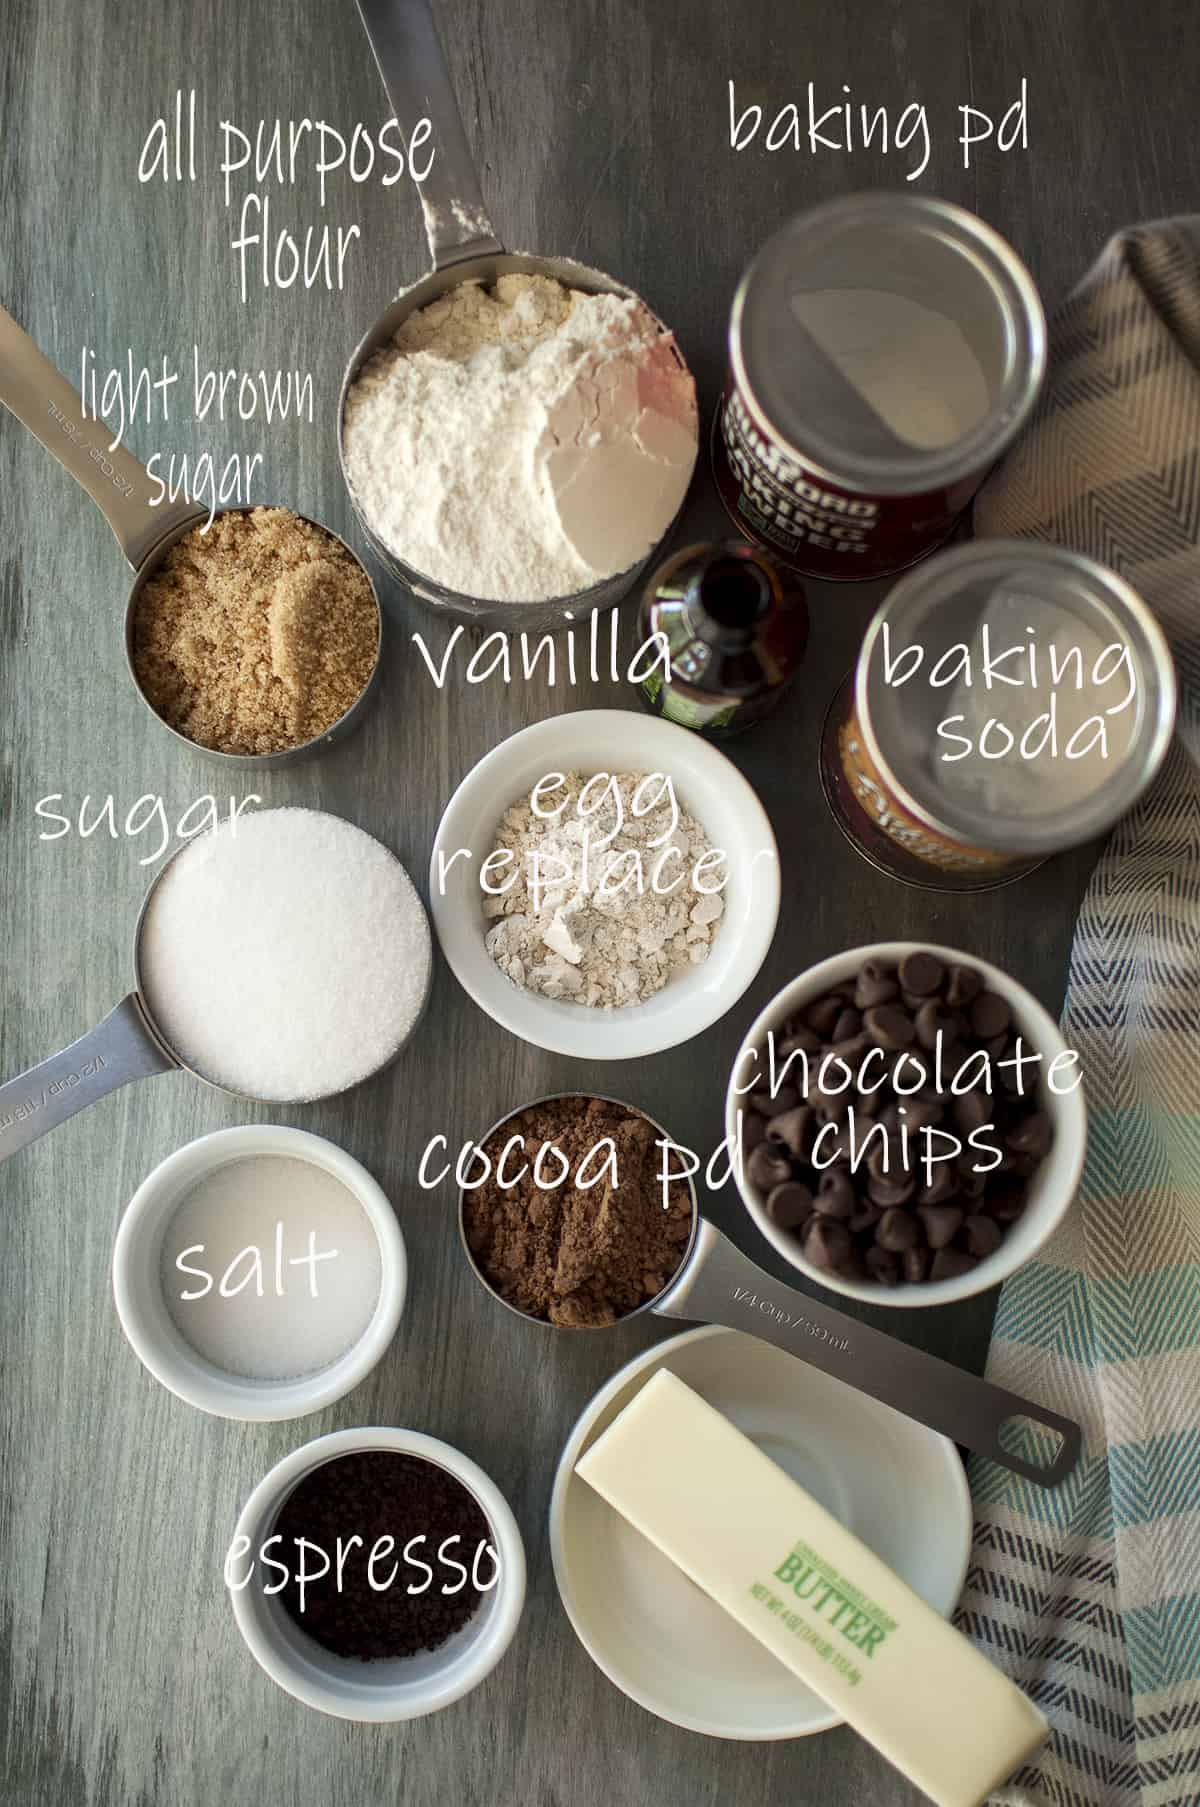 Ingredients needed - flour, sugar, salt, espresso, butter, cocoa powder, egg replacer, baking soda, baking powder, vanilla